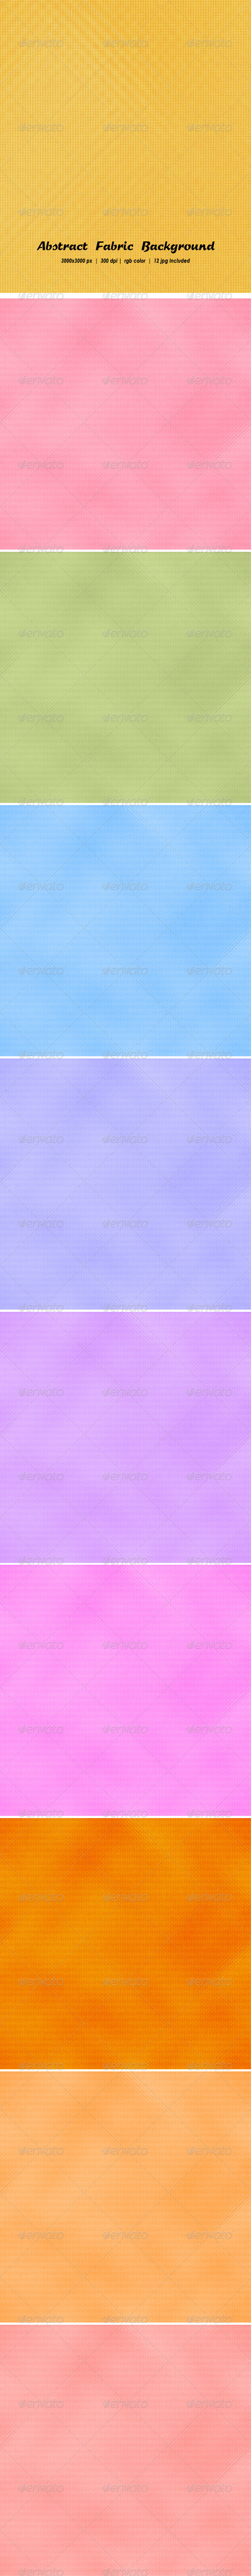 Abstract Fabric Background 2 - Backgrounds Graphics